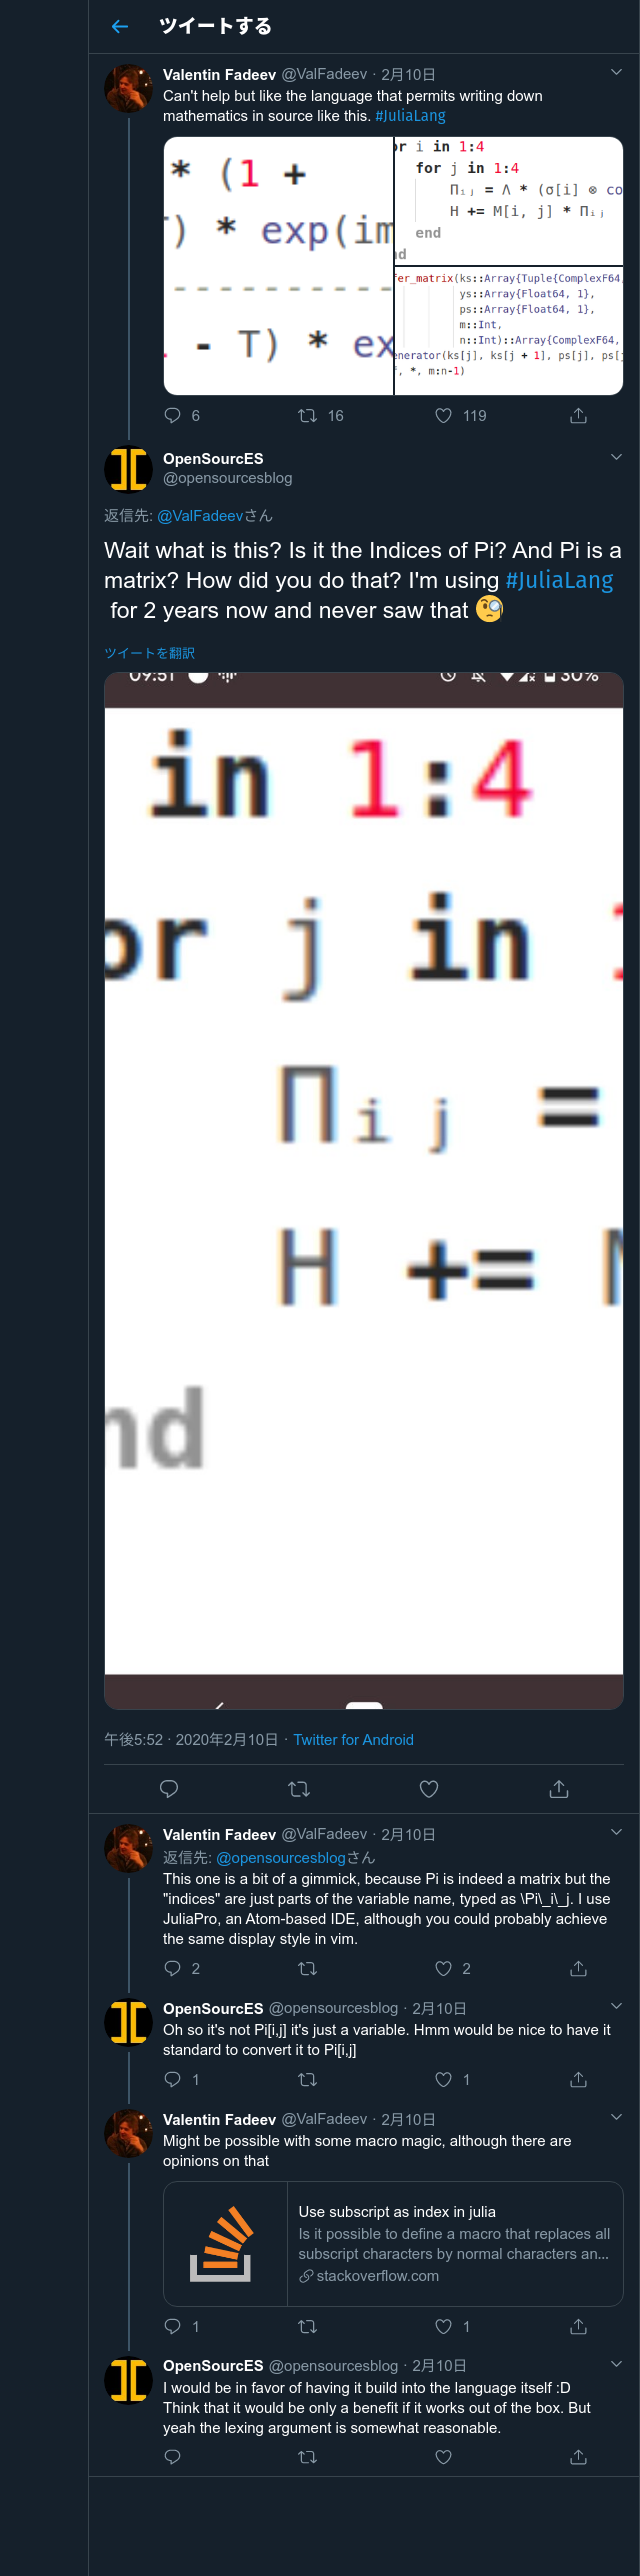 Wait_what_is_this_Is_it_the_Indices_of_Pi___Twitter.png